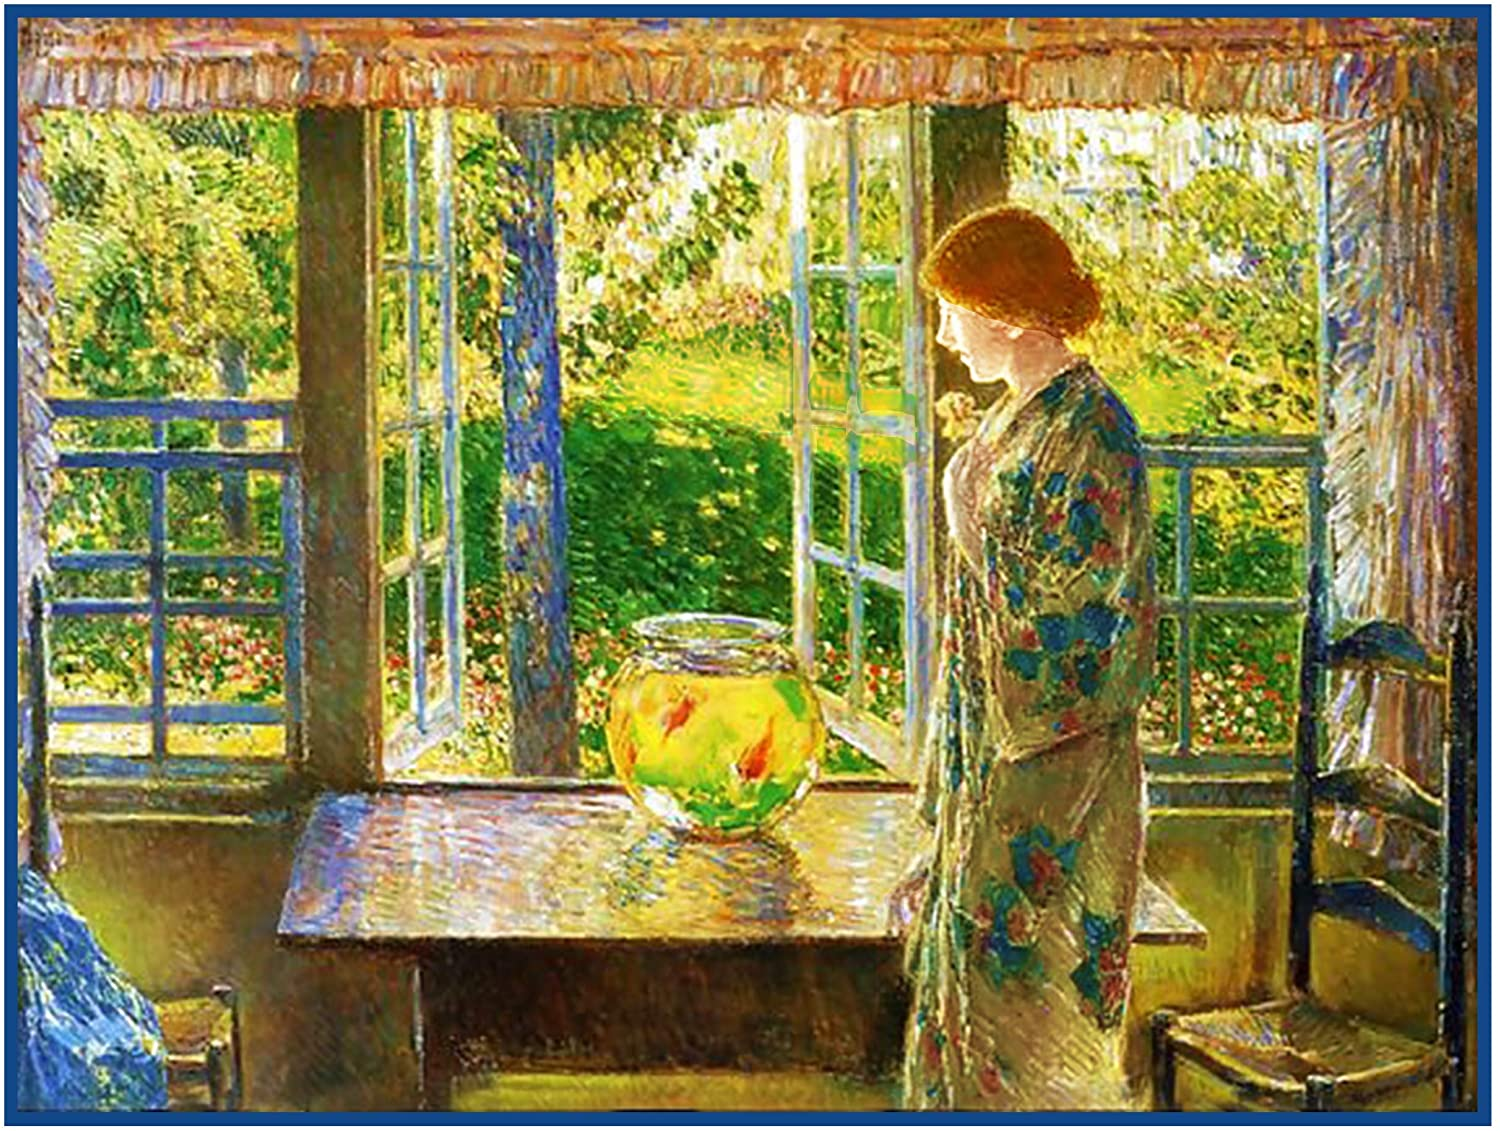 Orenco Originals Woman Looking The Goldfish Window American Impressionist Painter Childe Hassam Counted Cross Stitch Pattern